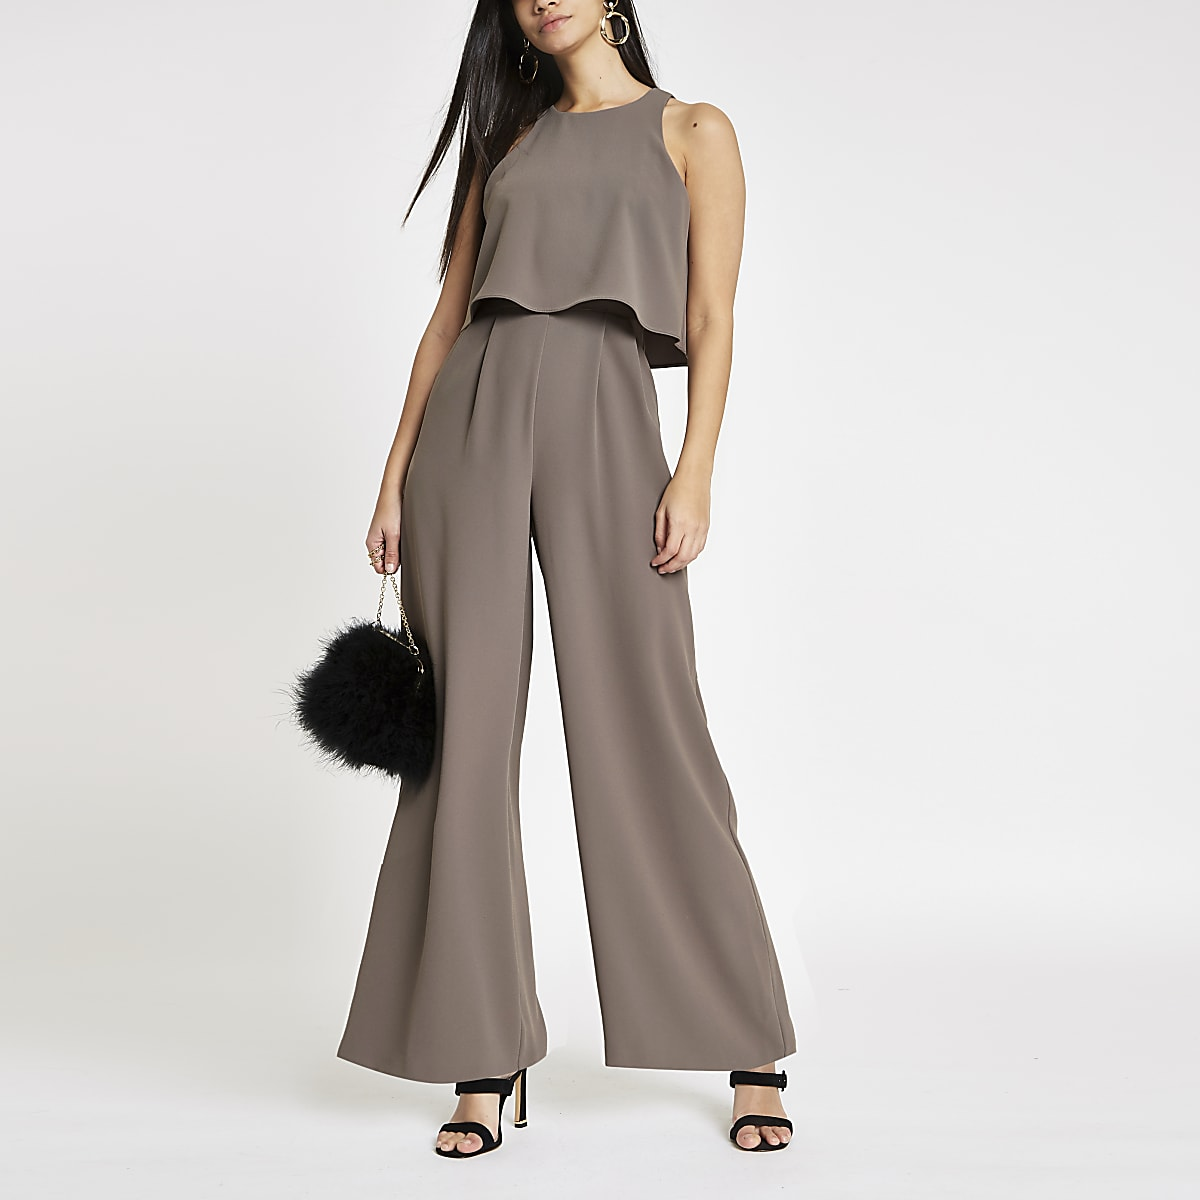 Dark grey wide leg jumpsuit